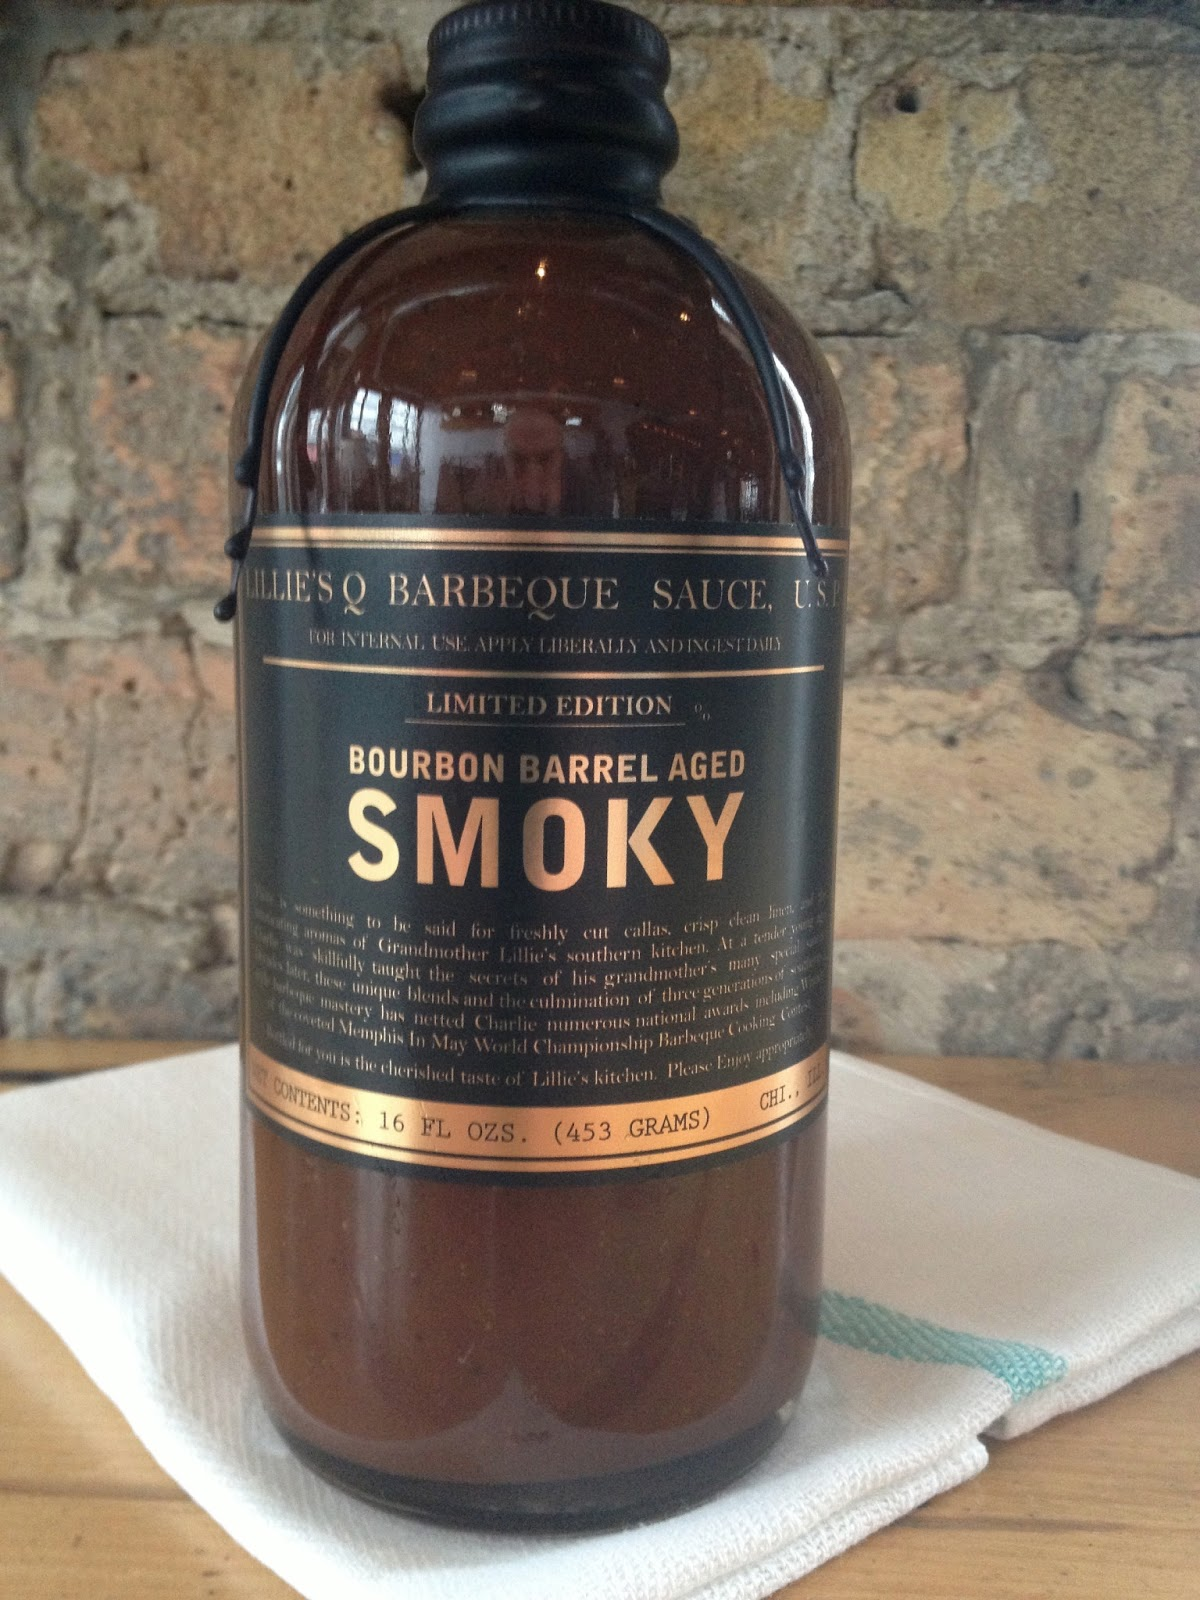 Pix724: Limited edition Lillie's Q Bourbon Barrel Aged Smoky BBQ sauce ...